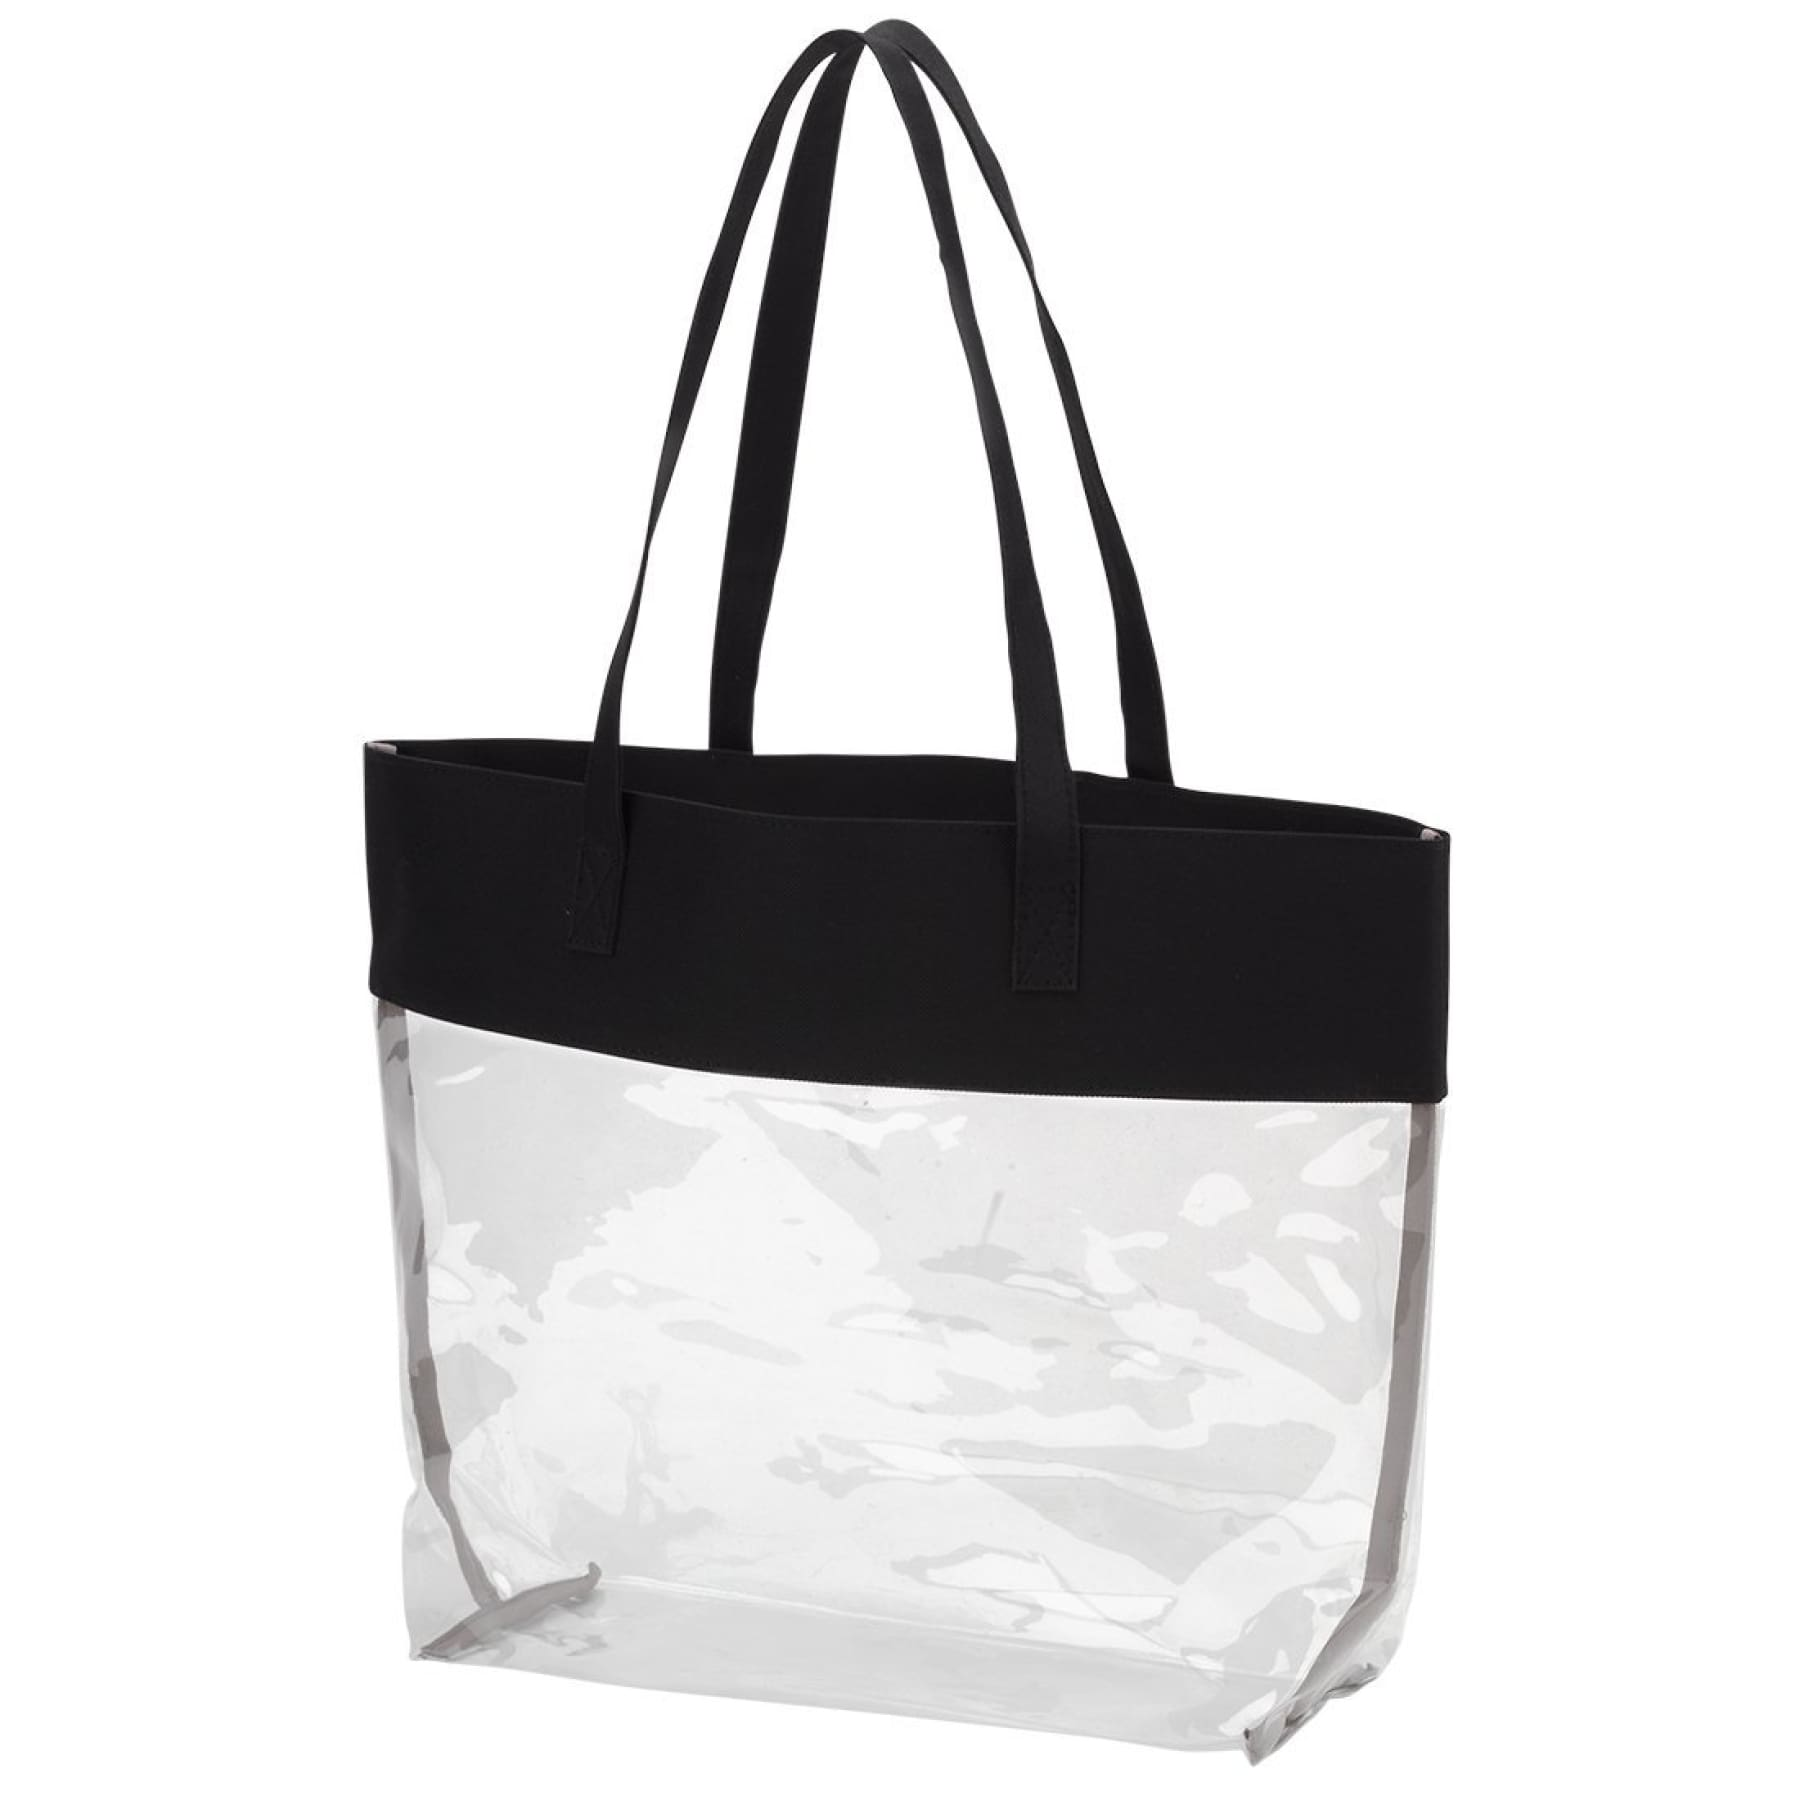 Clear Stadium Tote in Team Colors without Monogram,Tote - Dirt Road Divas Boutique